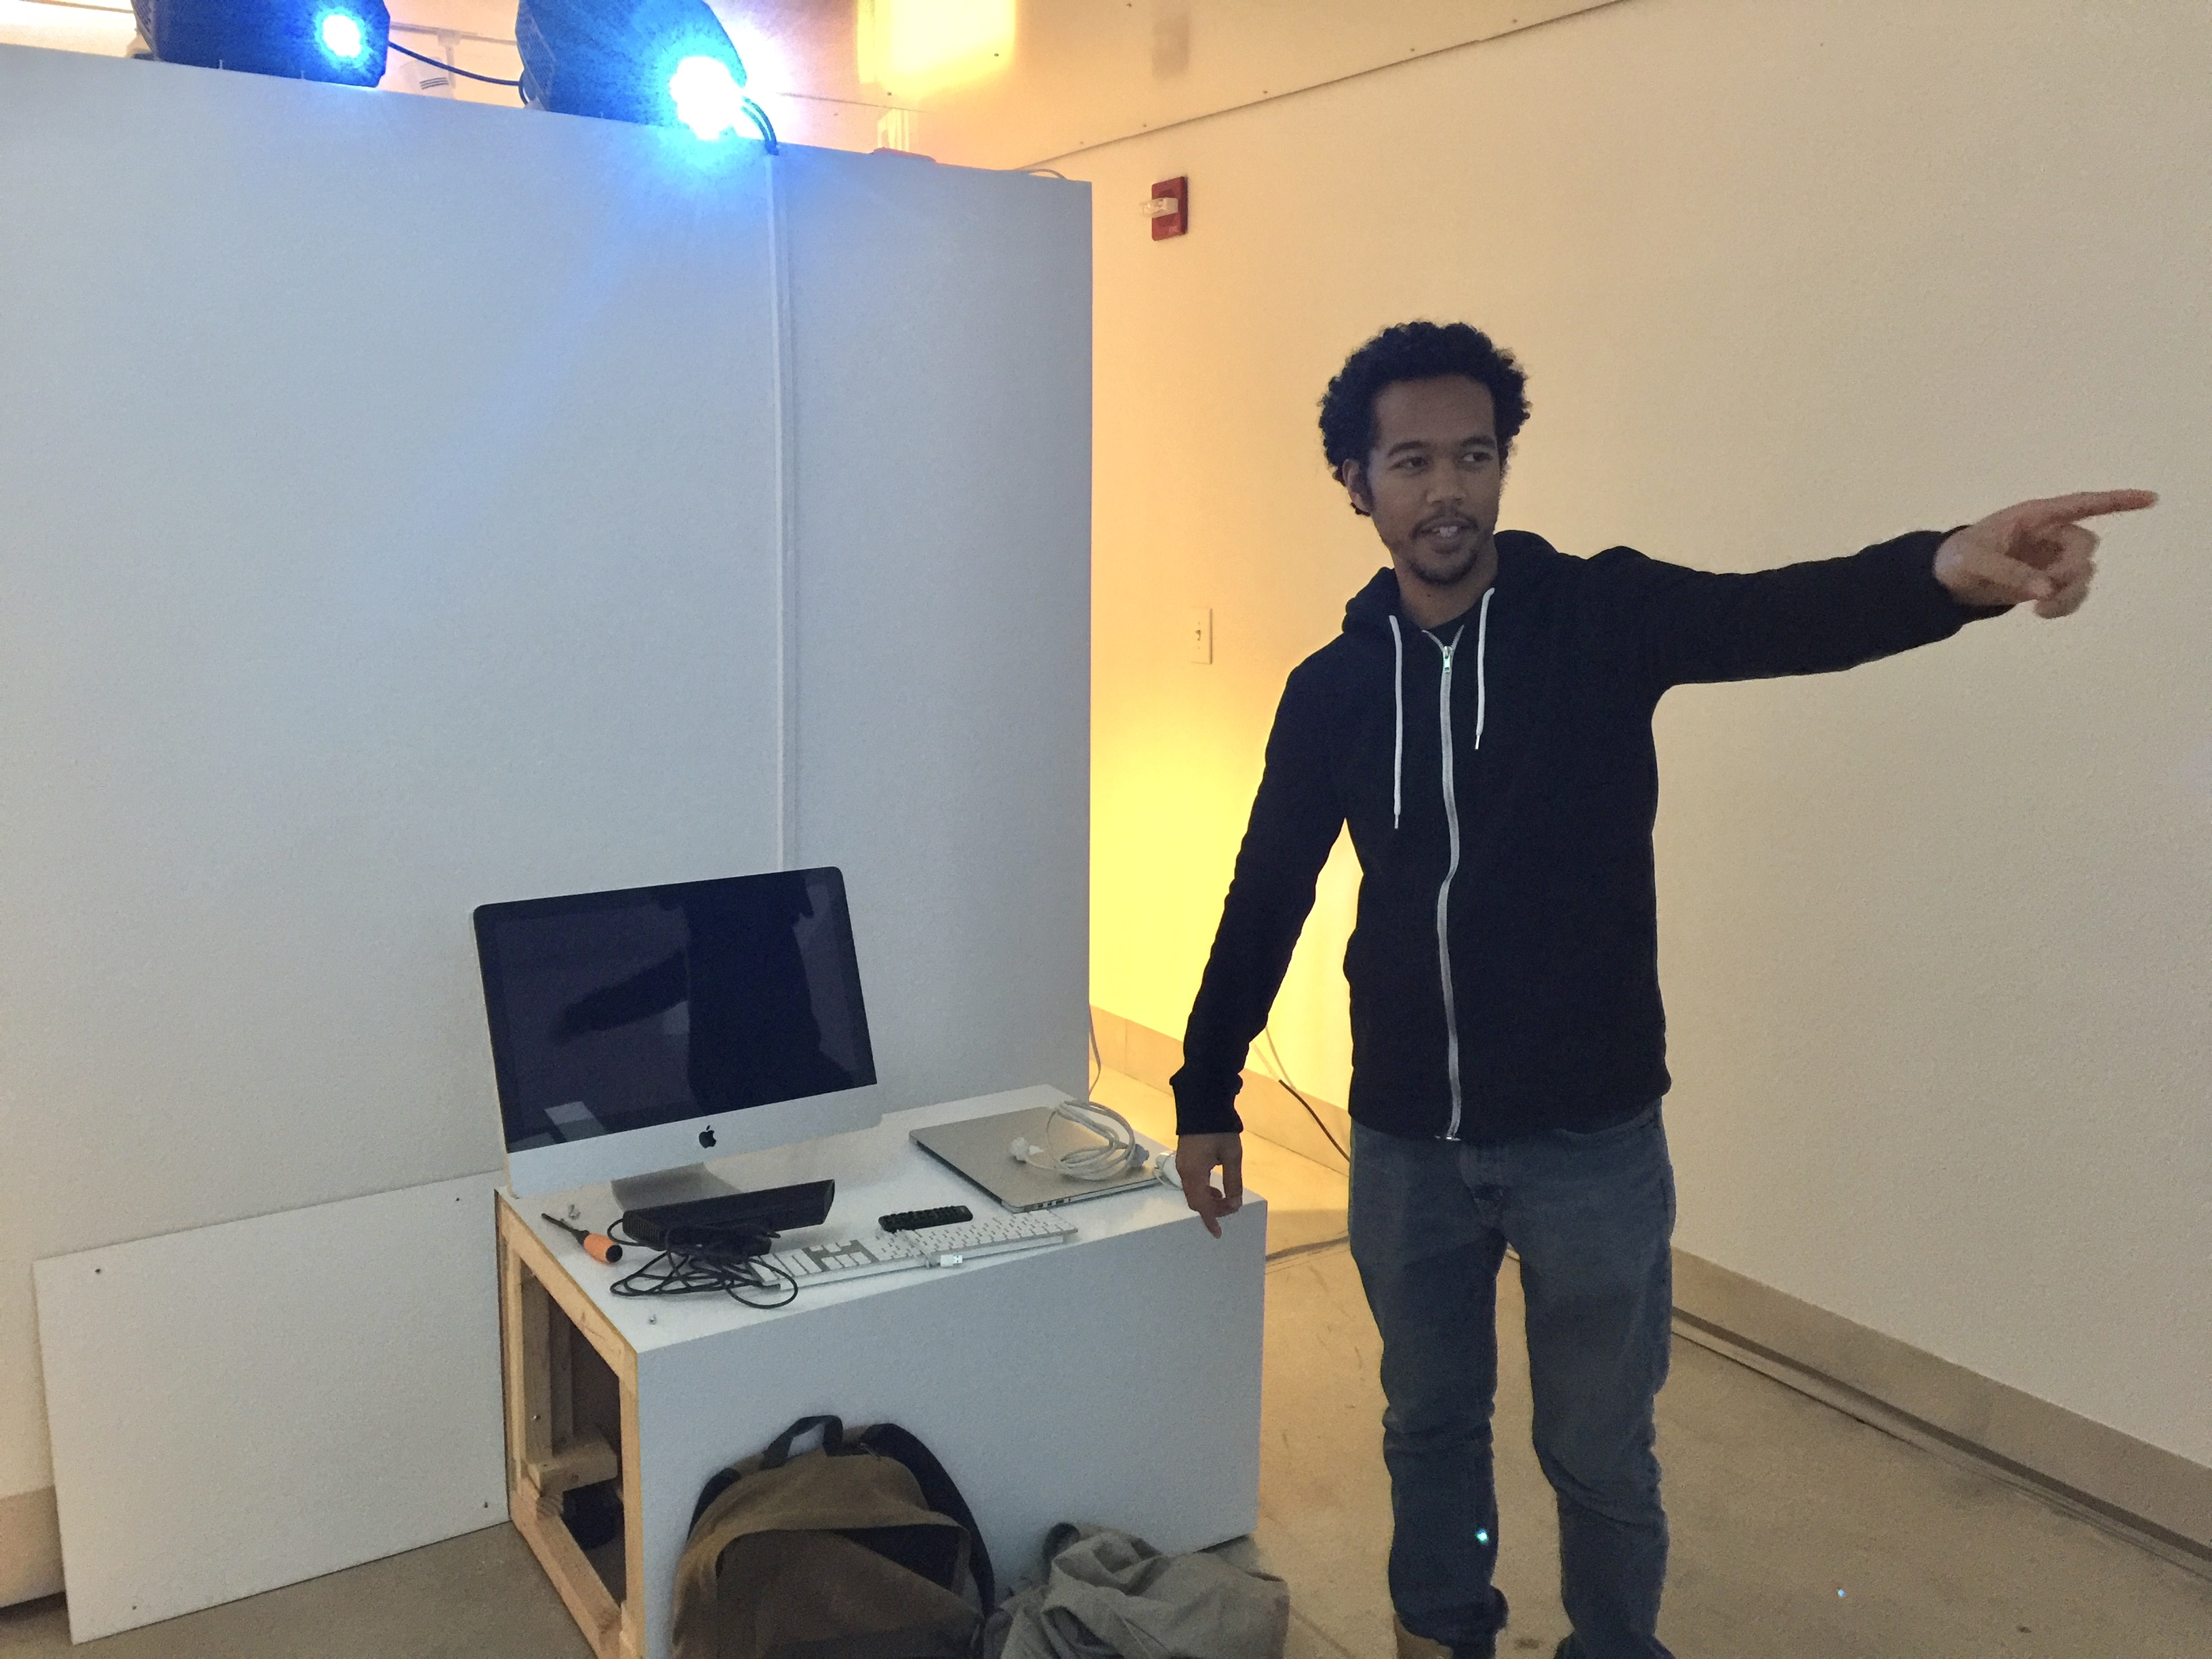 CAM student Robbie Fikes IV explaining an interactive installation he is working on.